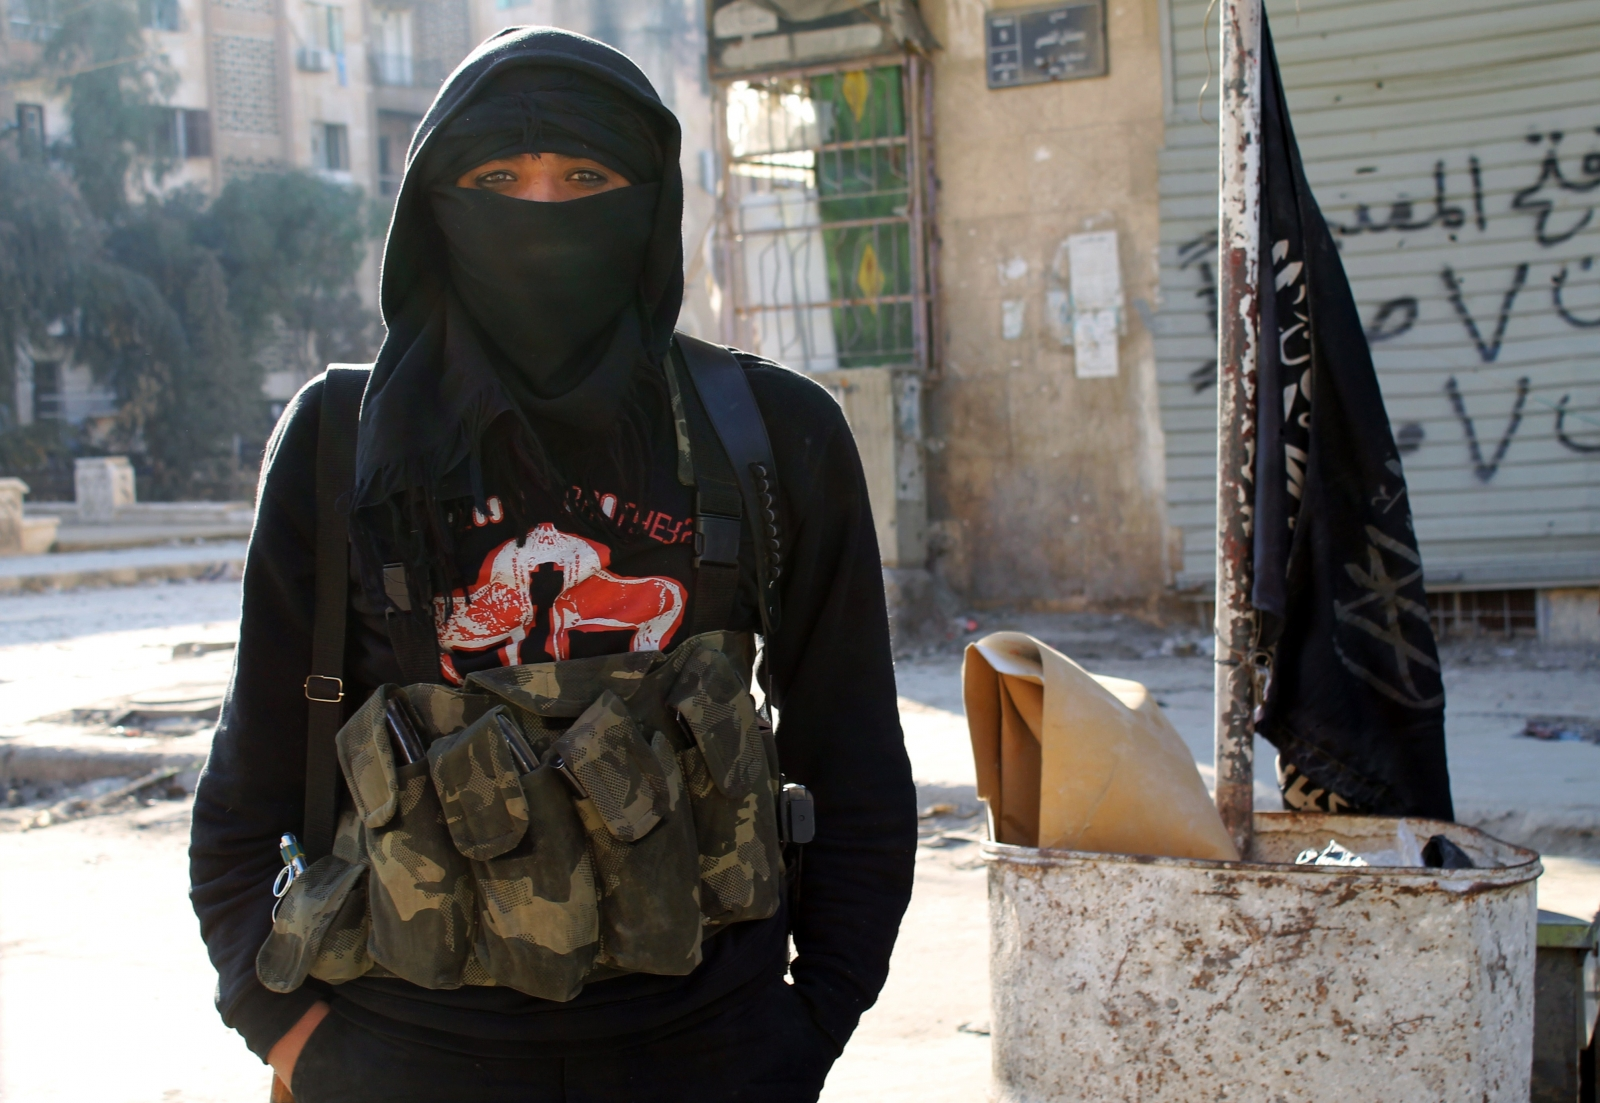 Member of terrorist group Jabhat al-Nusra in Syria